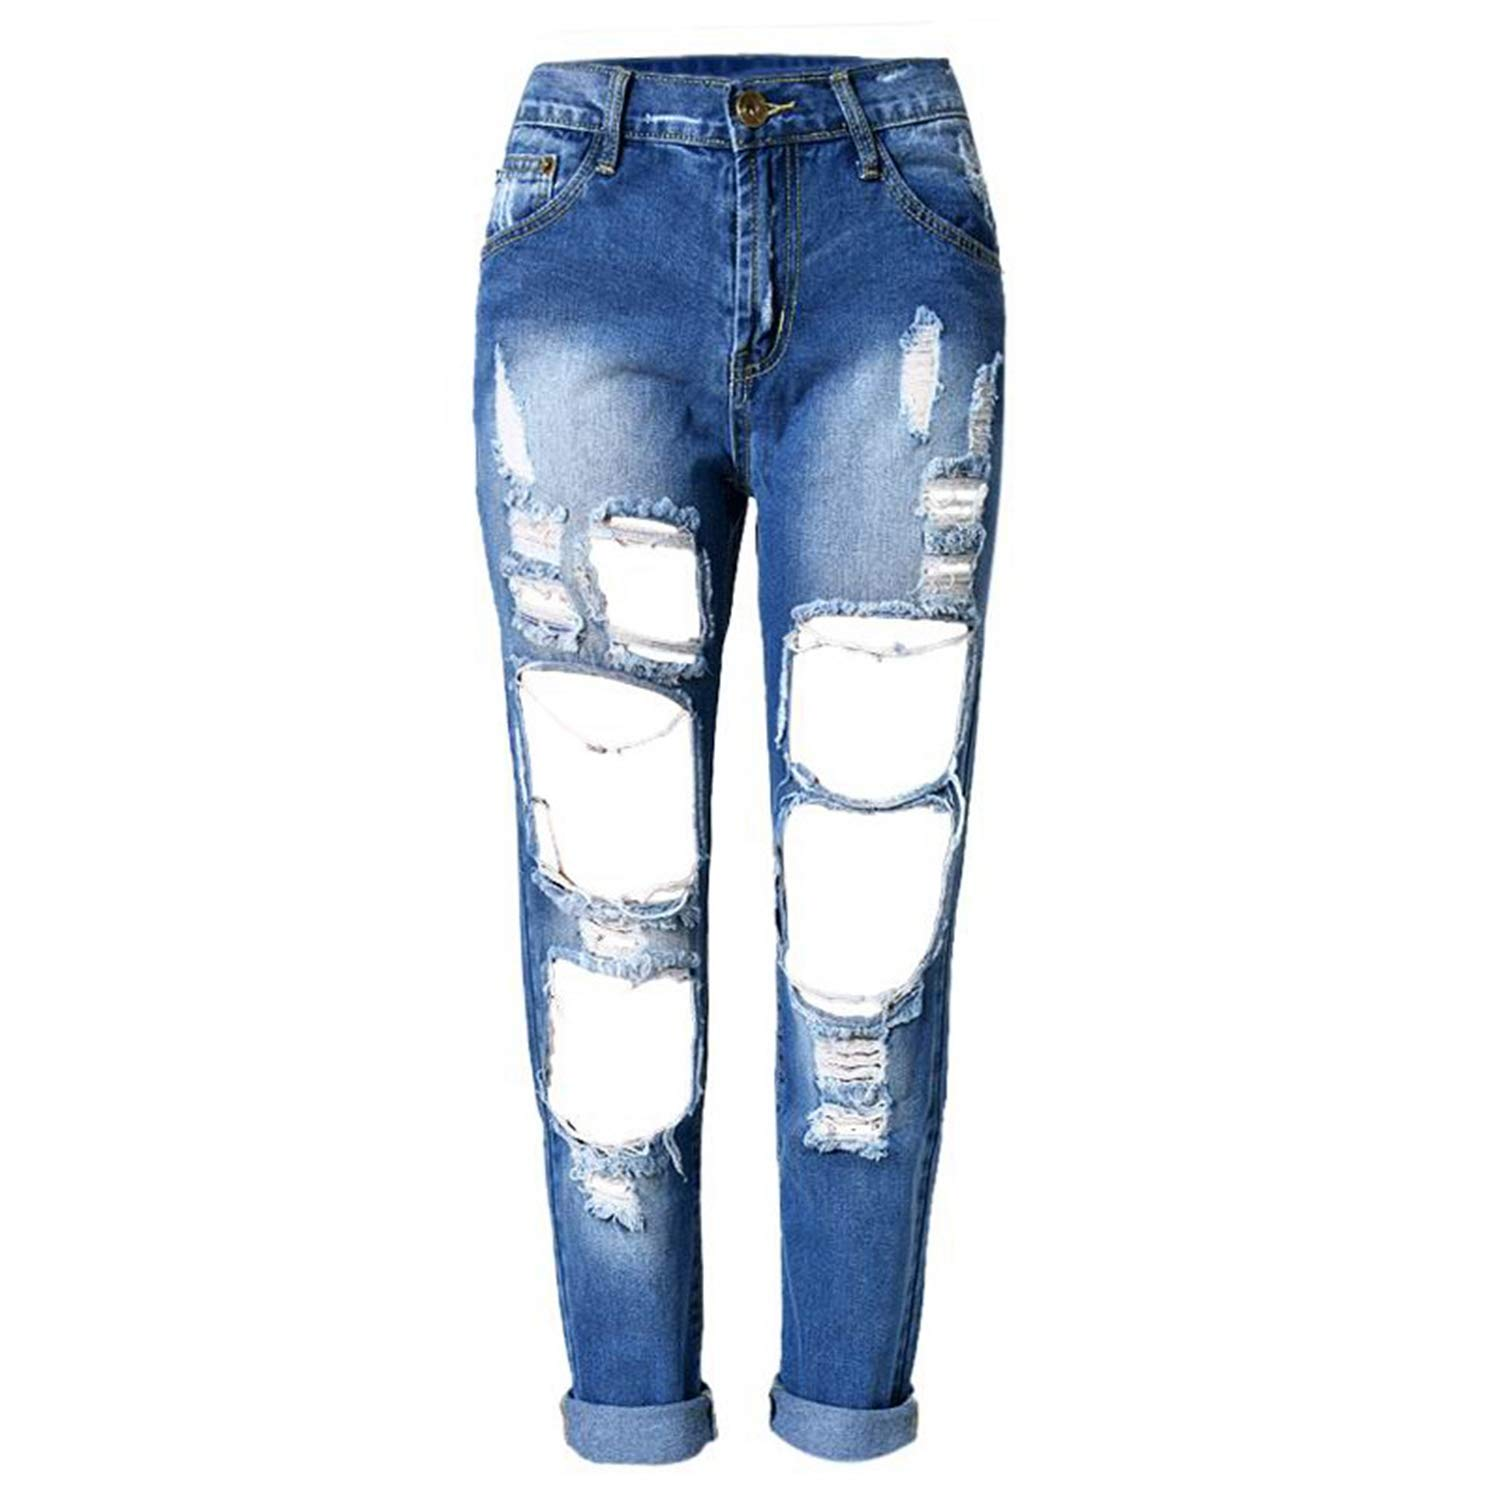 Bleached bluee Fashion Ripped Jeans Casual Washed Holes Boyfriend Jeans for Women Regular Long Torn Jeans Denim Pants